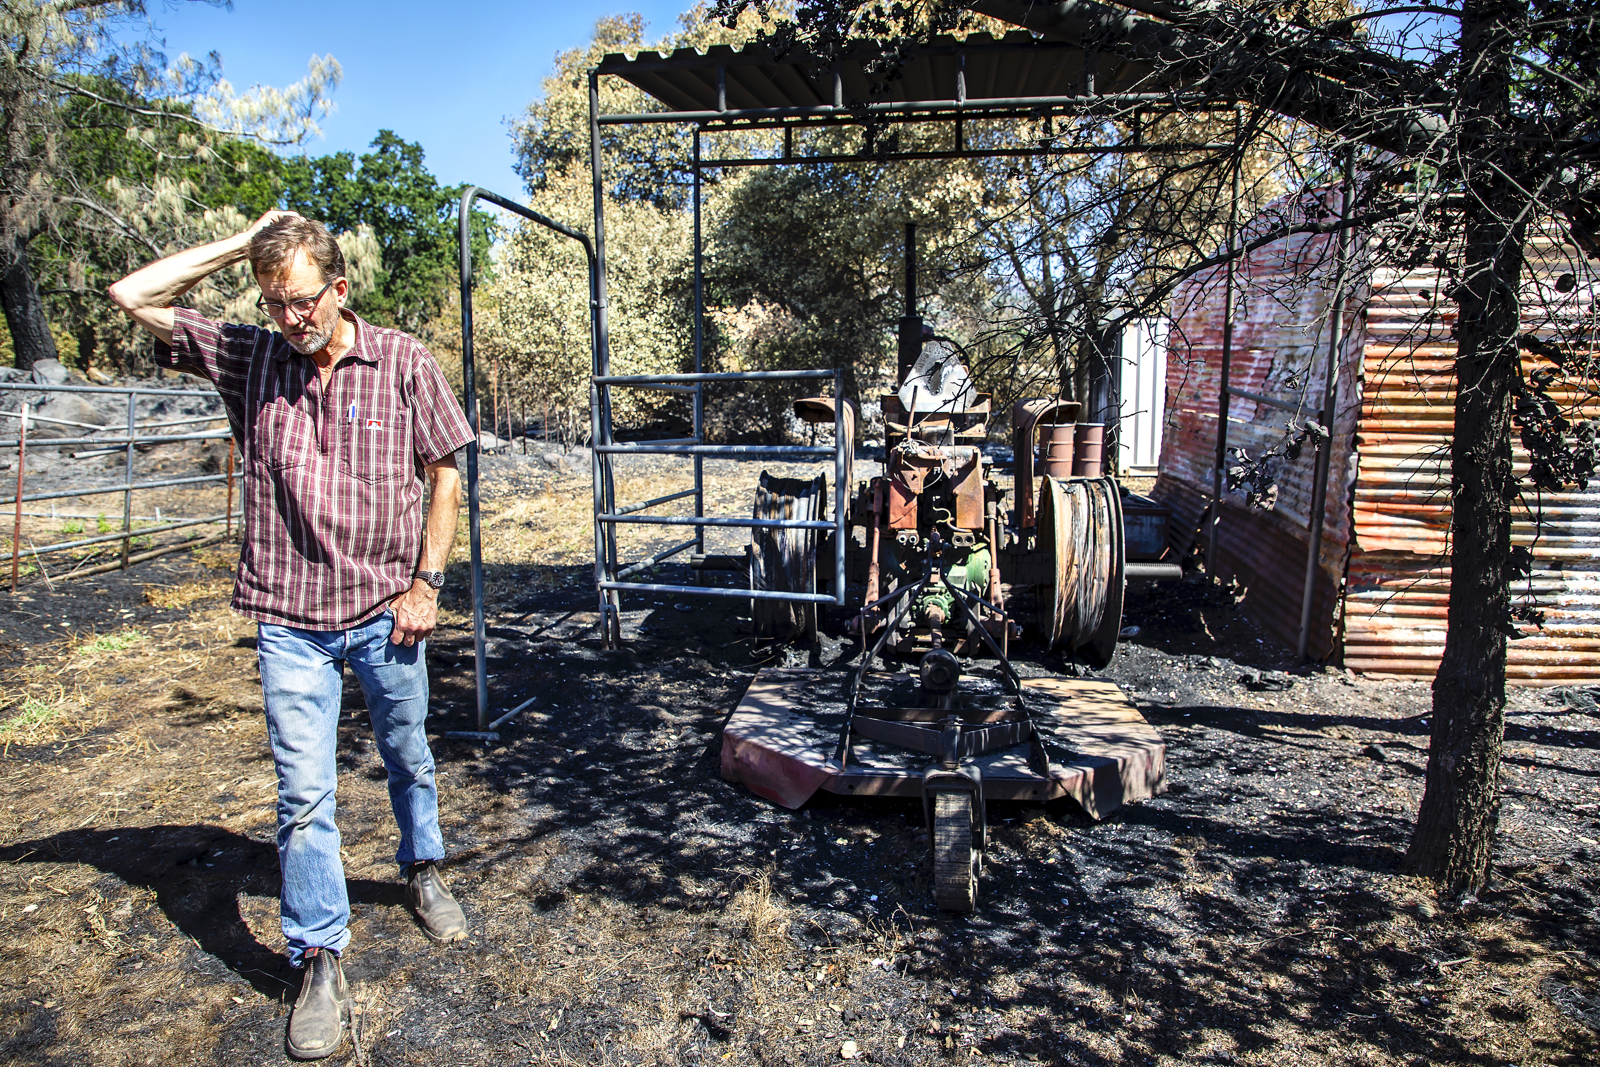 Kaisel's vintage John Deere tractor was destroyed in the fire. He has since replaced it.